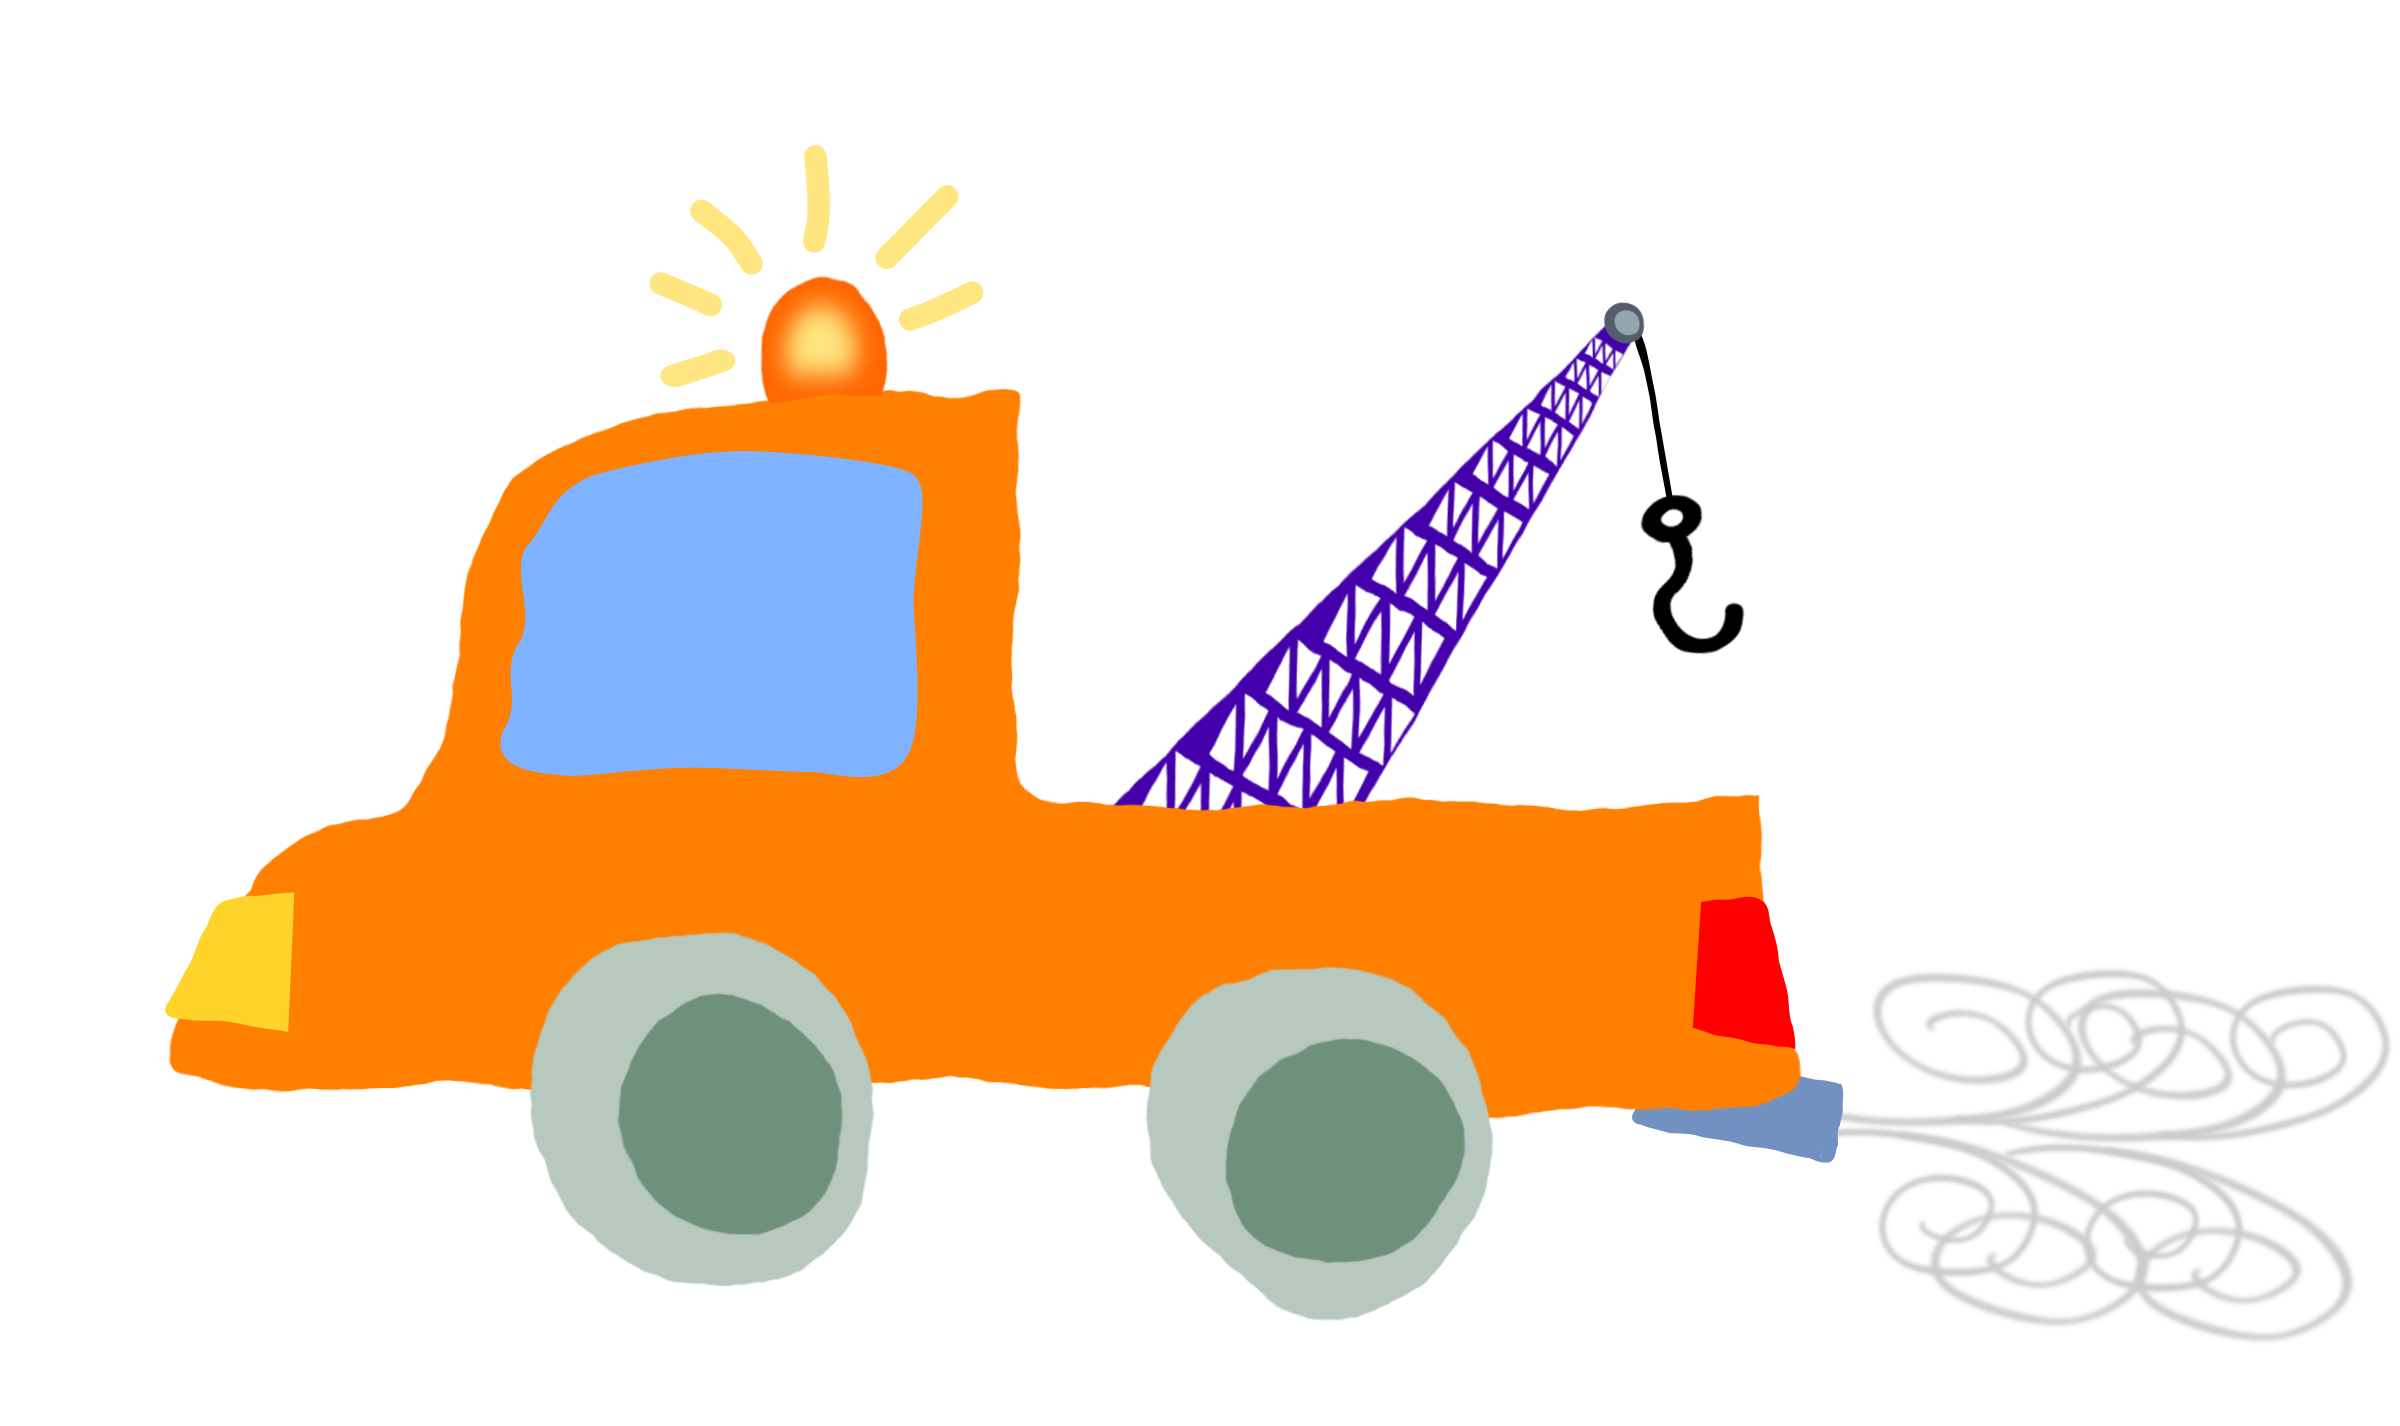 Crazy car clipart clip royalty free library Clipart - Crooked car crane 1 on its way to finally tow the weasel clip royalty free library